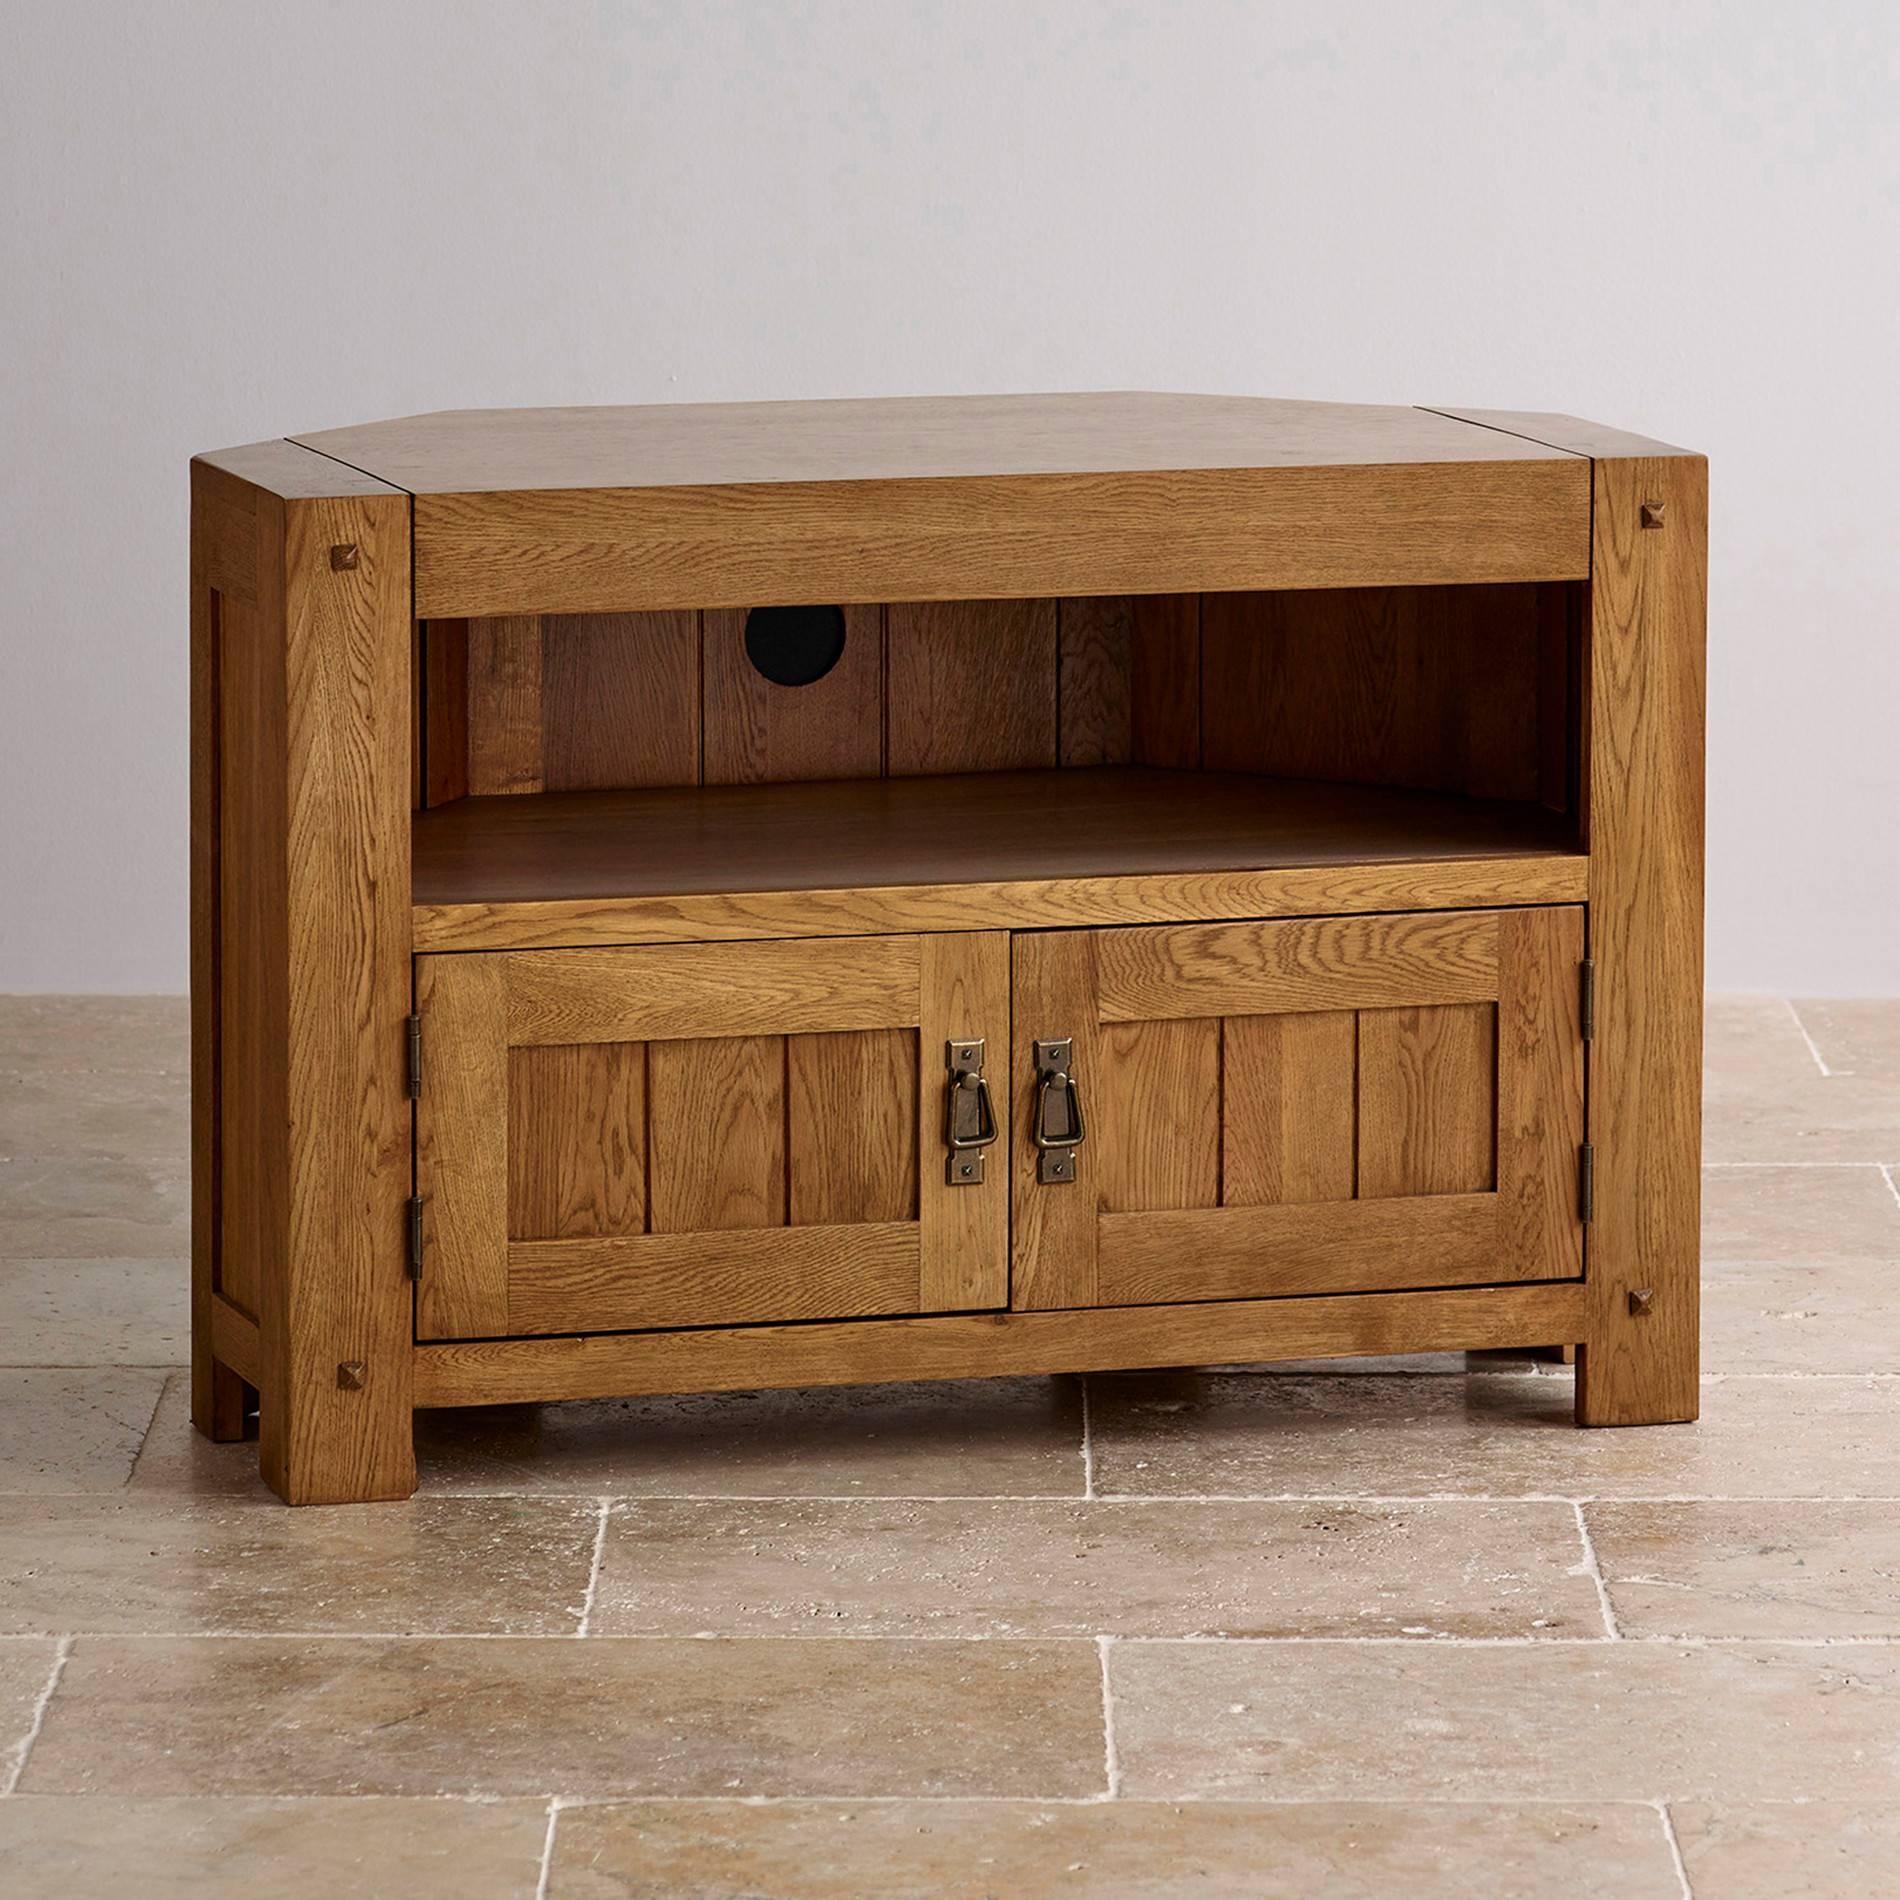 Quercus Corner Tv Cabinet In Rustic Oak | Oak Furniture Land With Wooden Corner Tv Units (View 7 of 15)